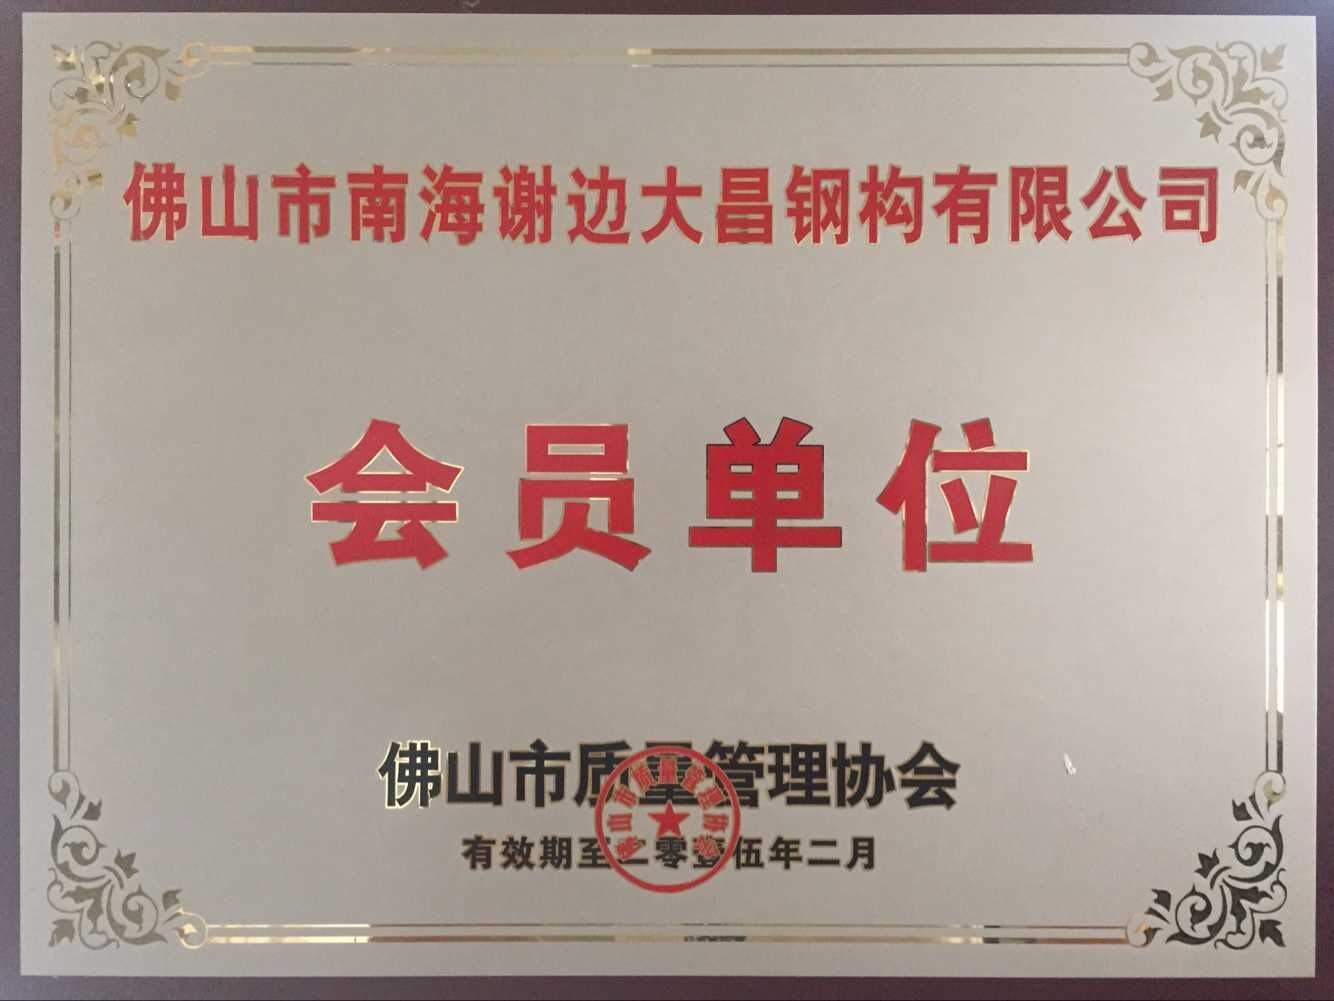 Foshan Quality Management Association